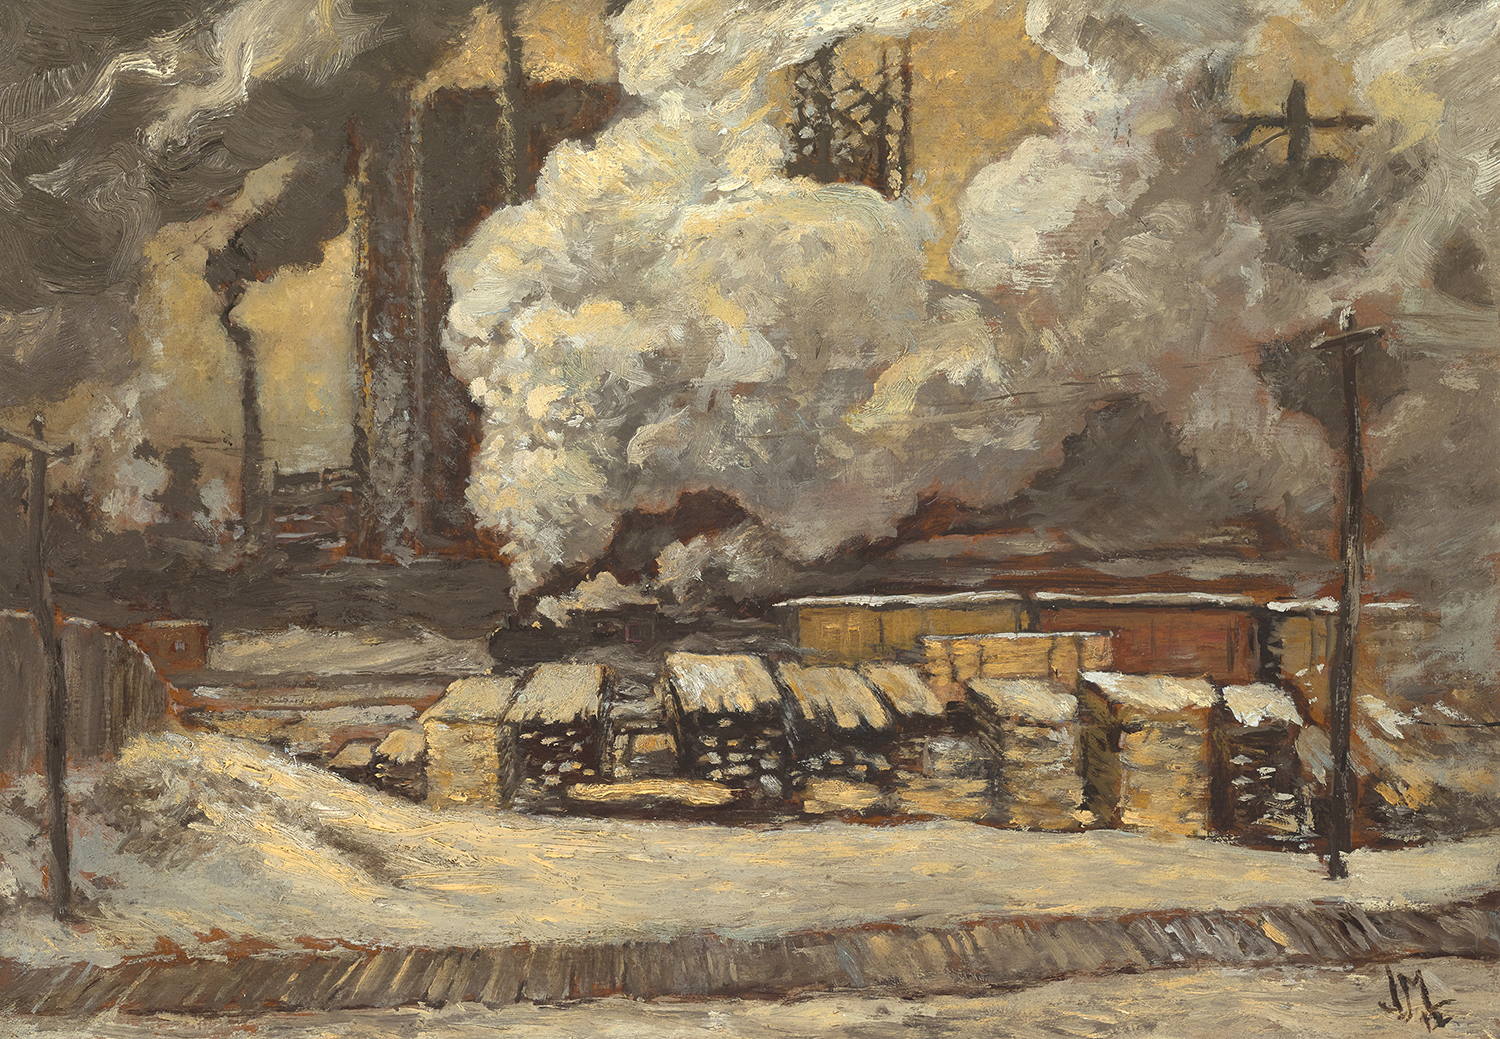 J.E.H. MacDonald, Tracks And Traffic, 1912